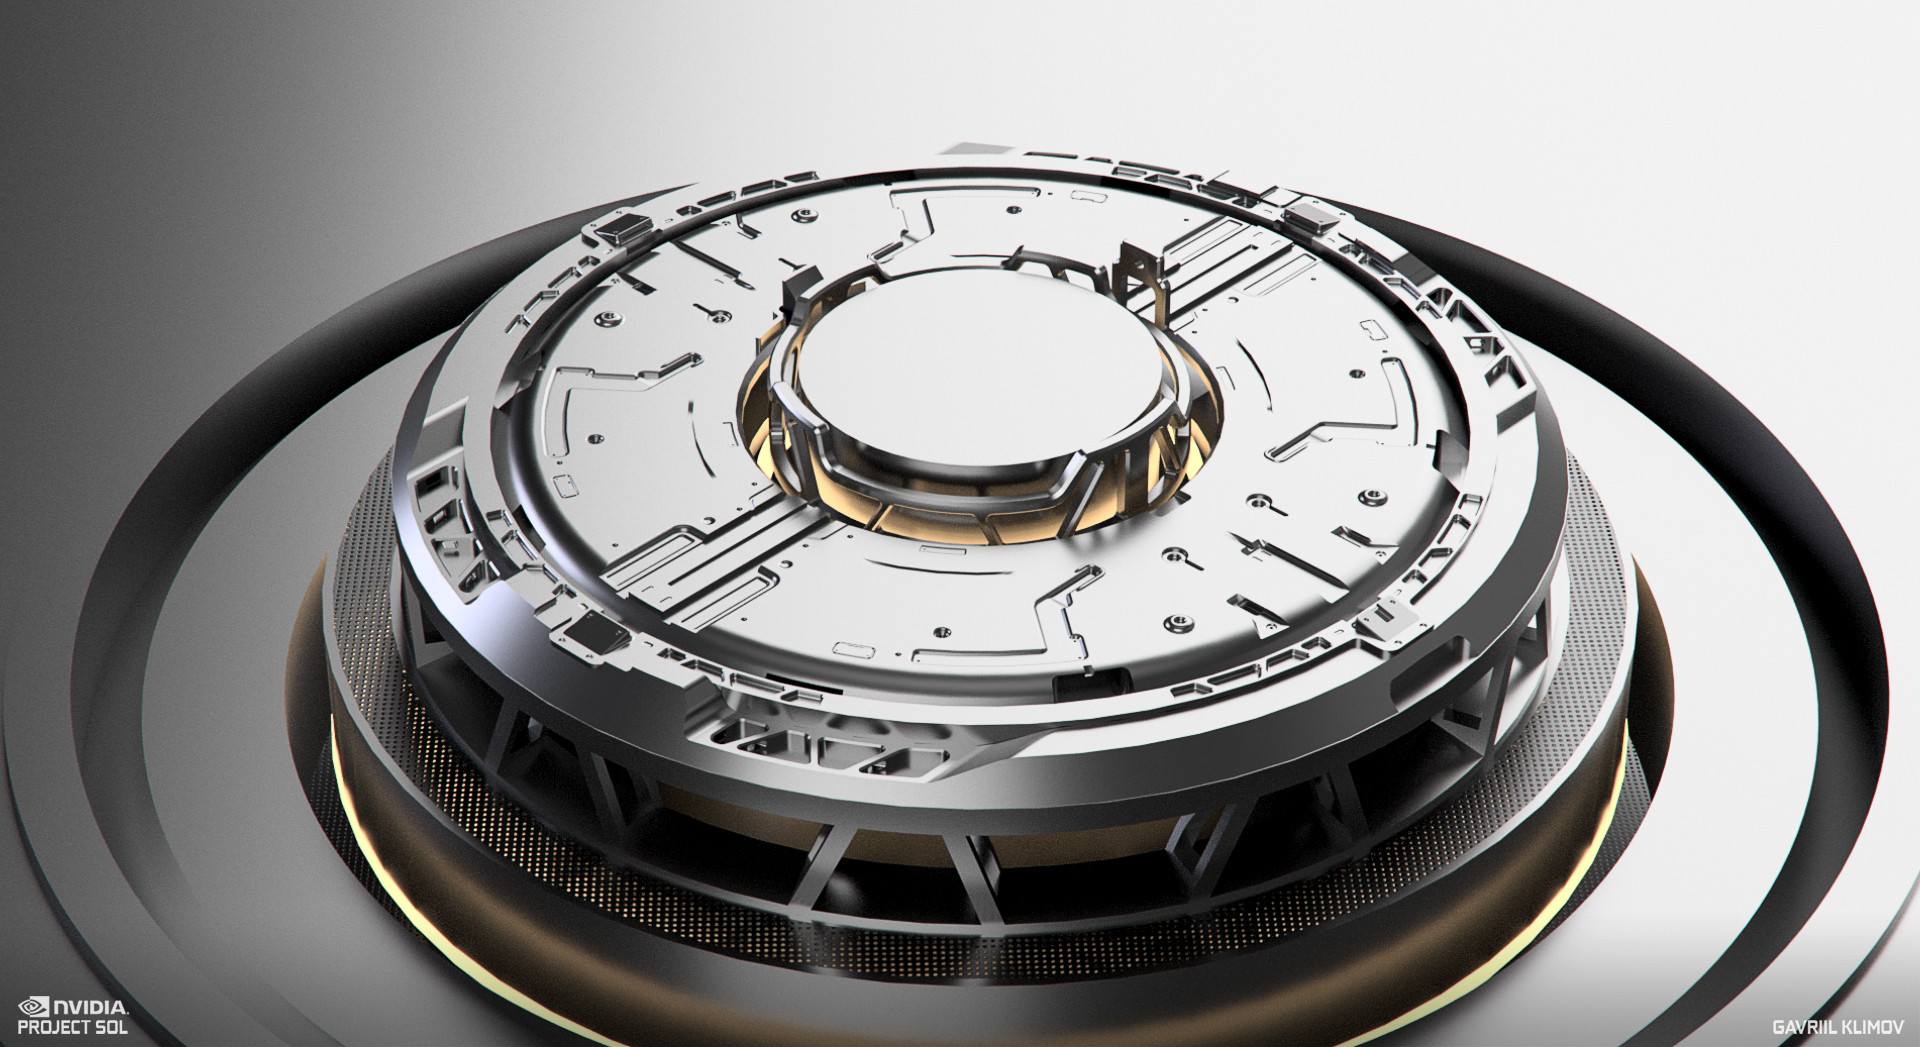 I started with the very inner ring and started to model inwards from outwards. Work in progress render